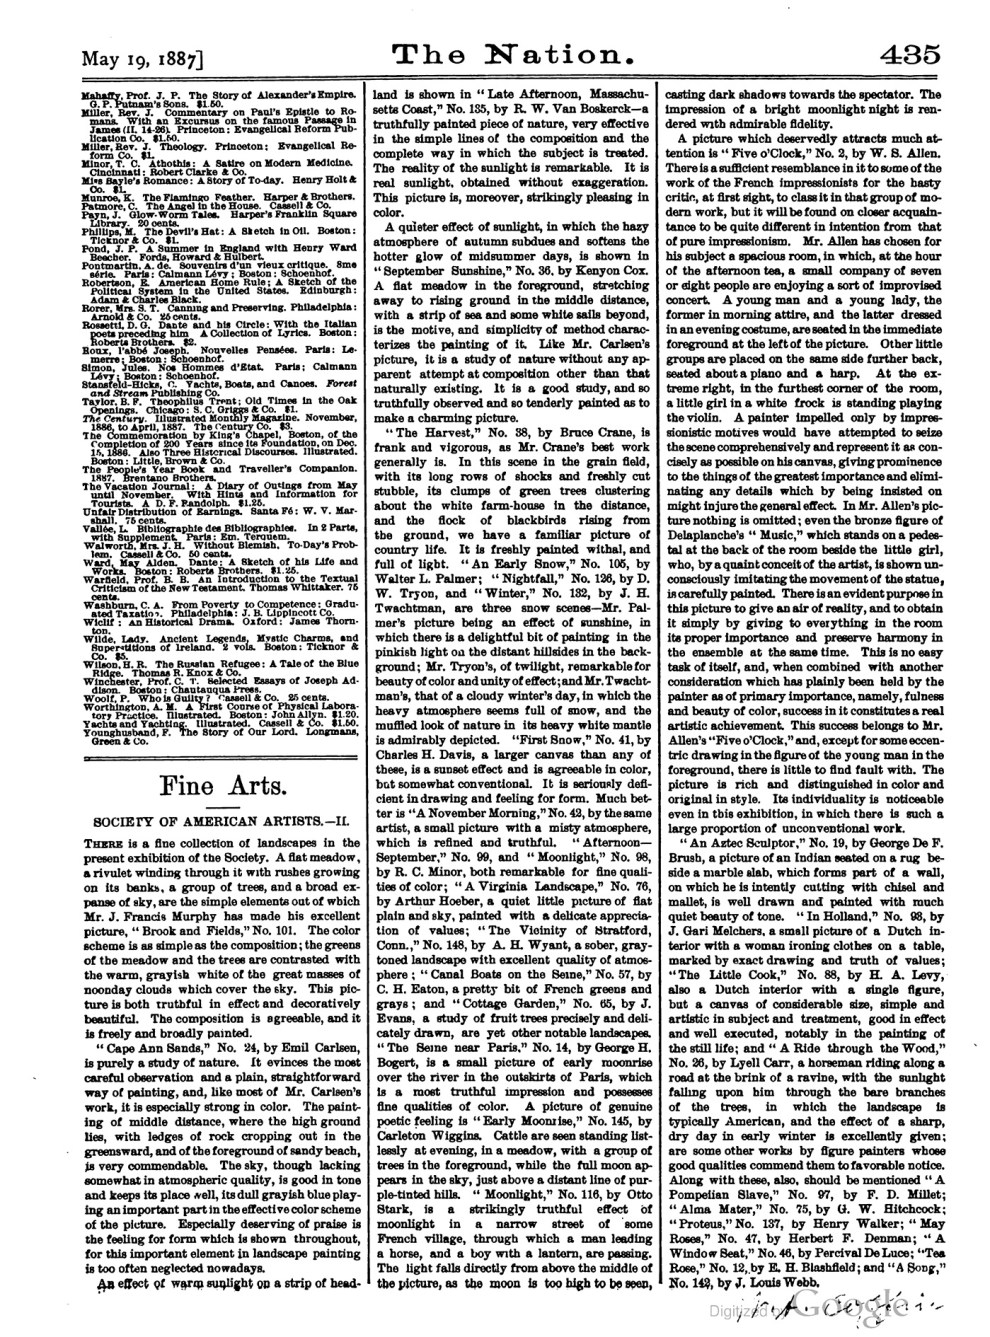 """The Nation, """"American Society of Artists"""", May 19, 1887, pg. 435, volume 44, #24, not illustrated"""